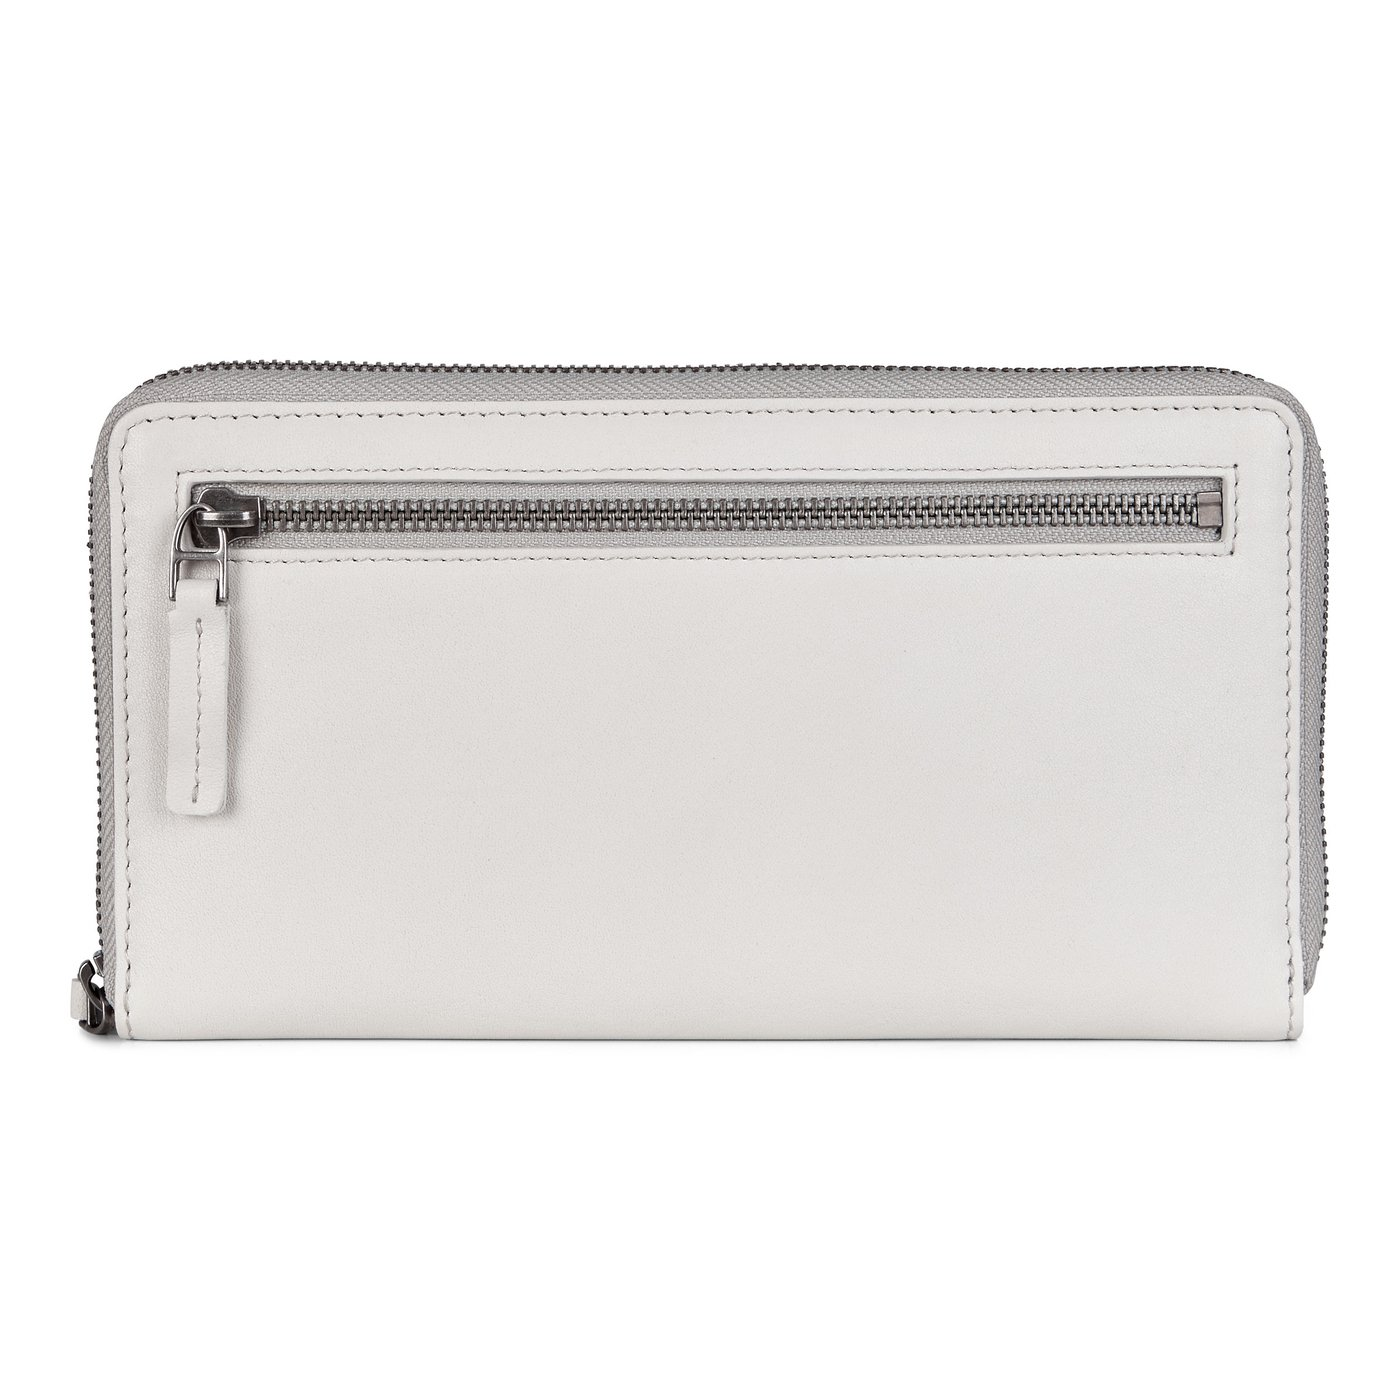 ECCO Casper Travel Wallet